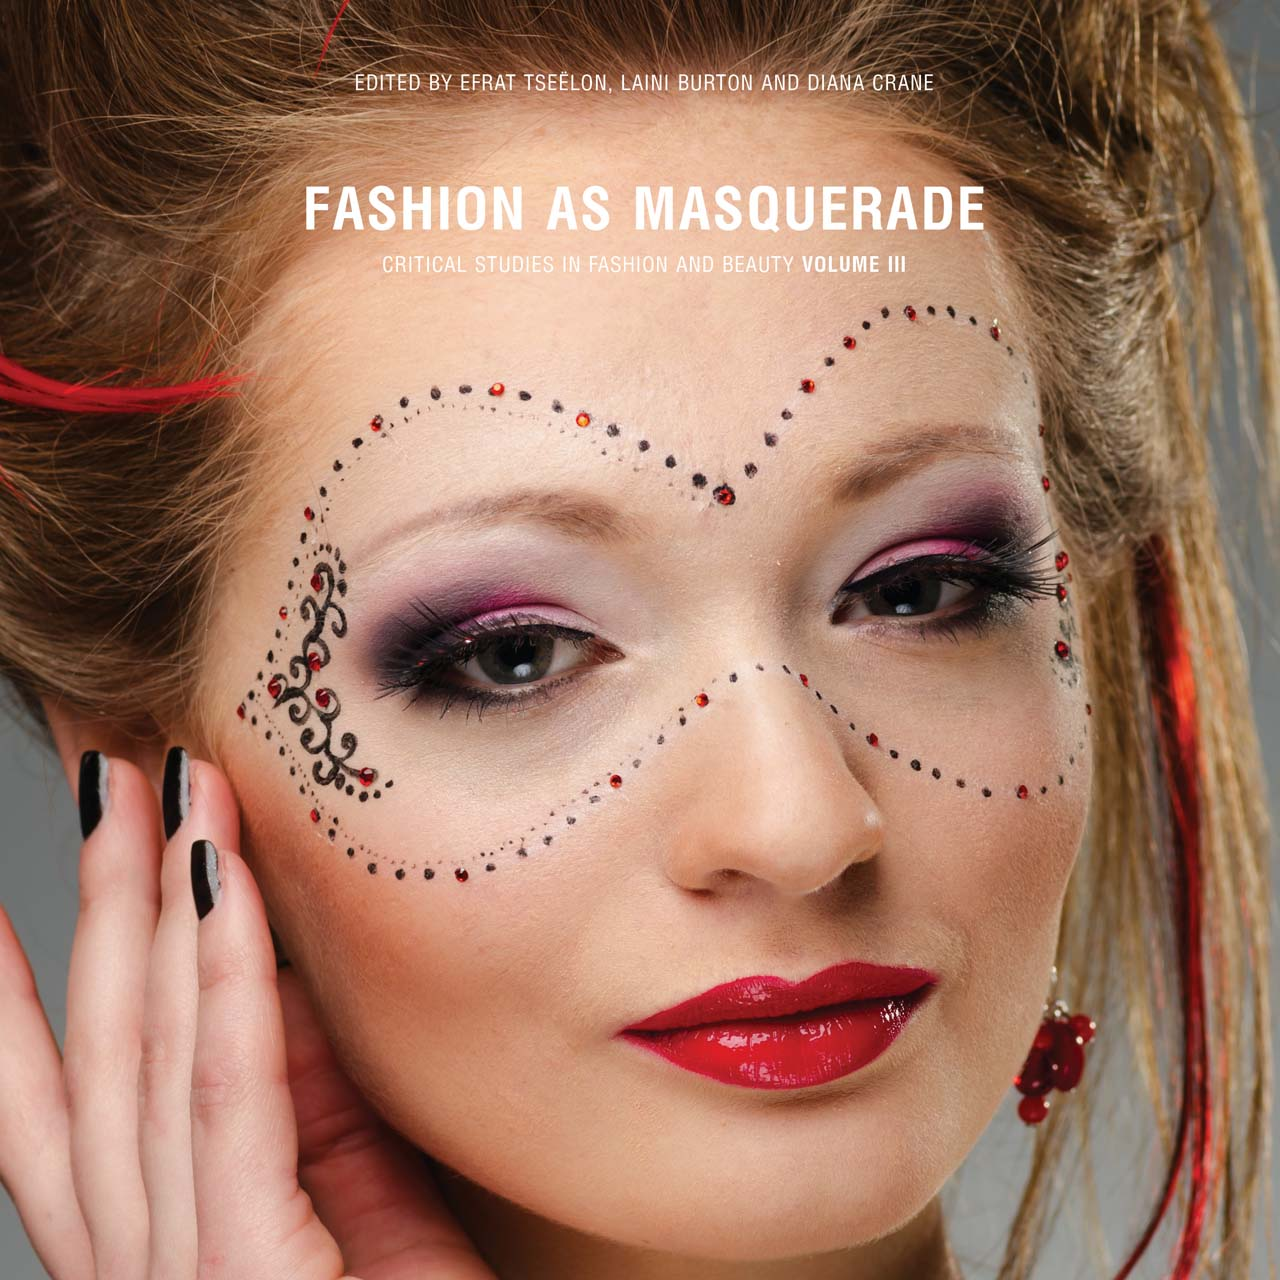 Fashion as Masquerade